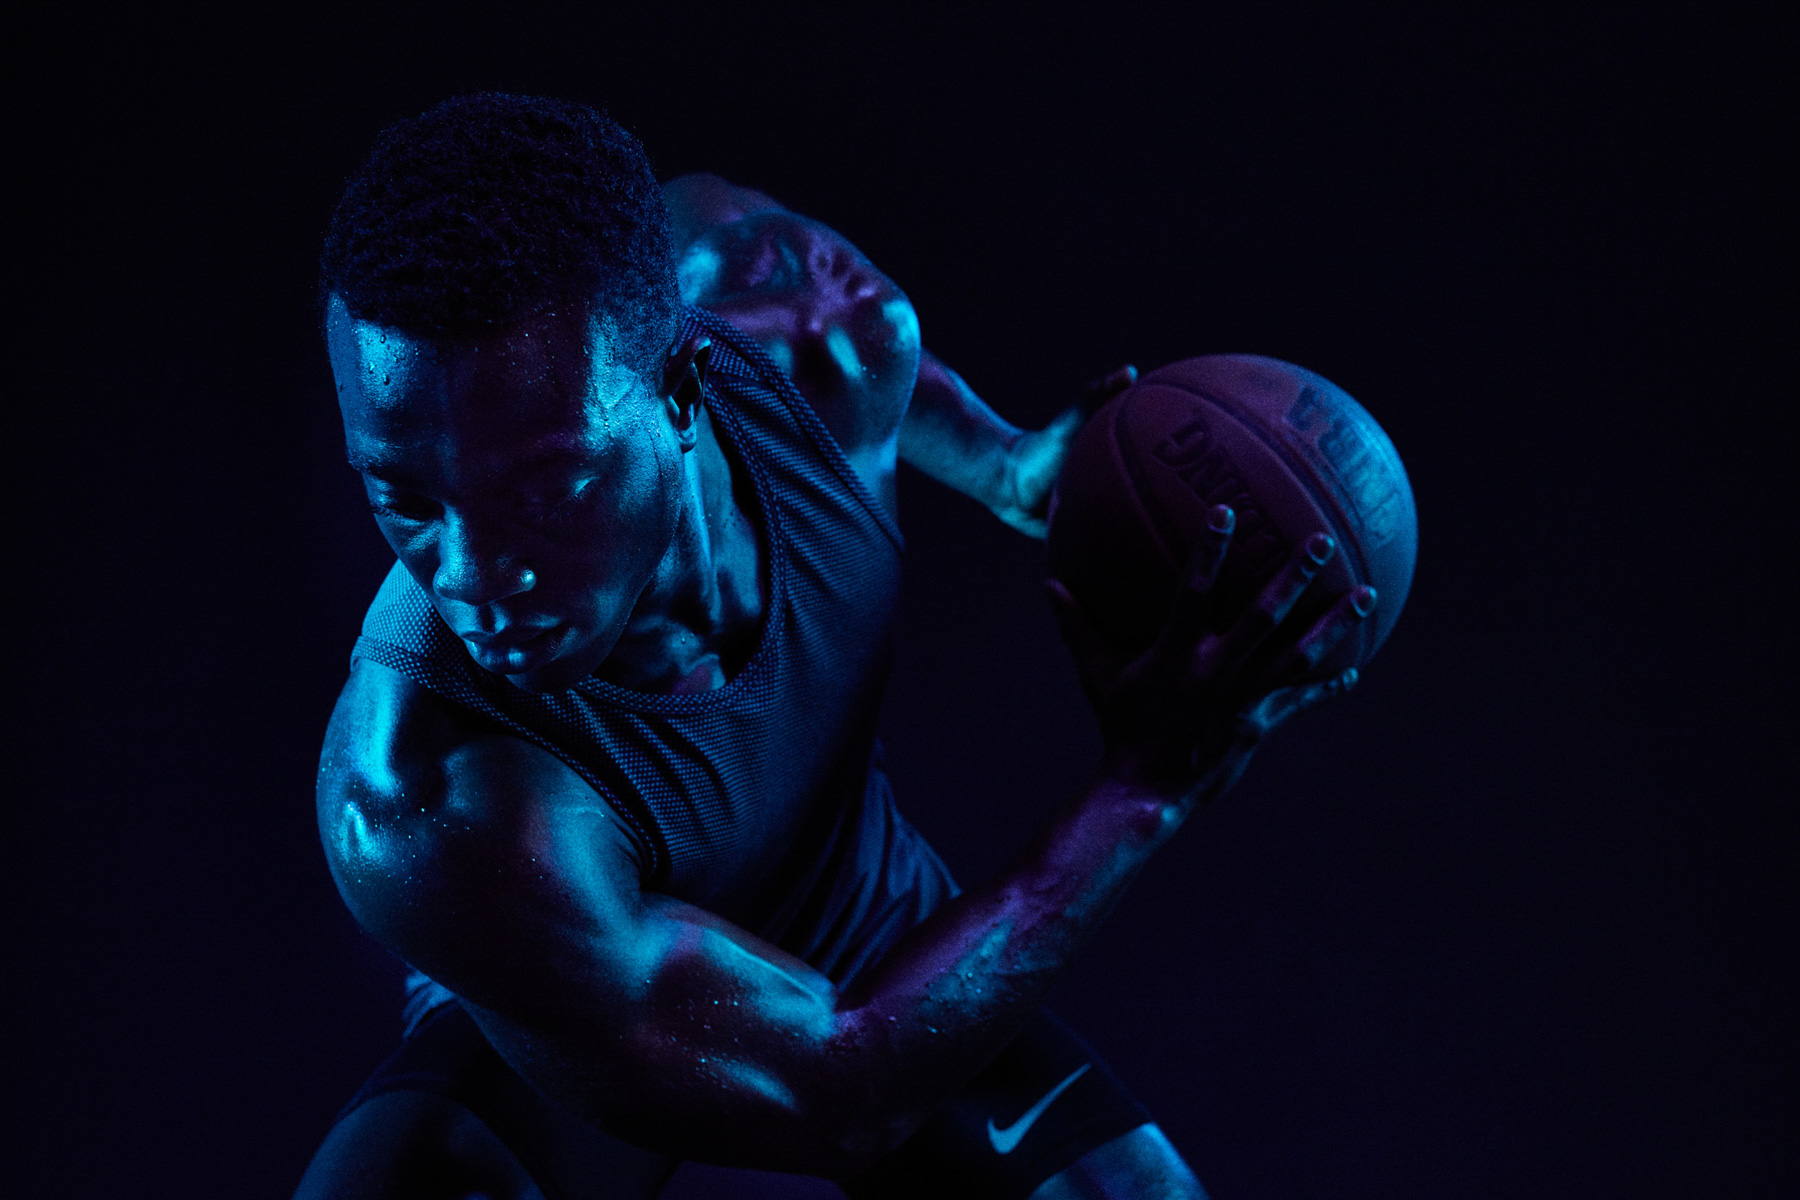 Basketball athlete David Kojo Aidoo